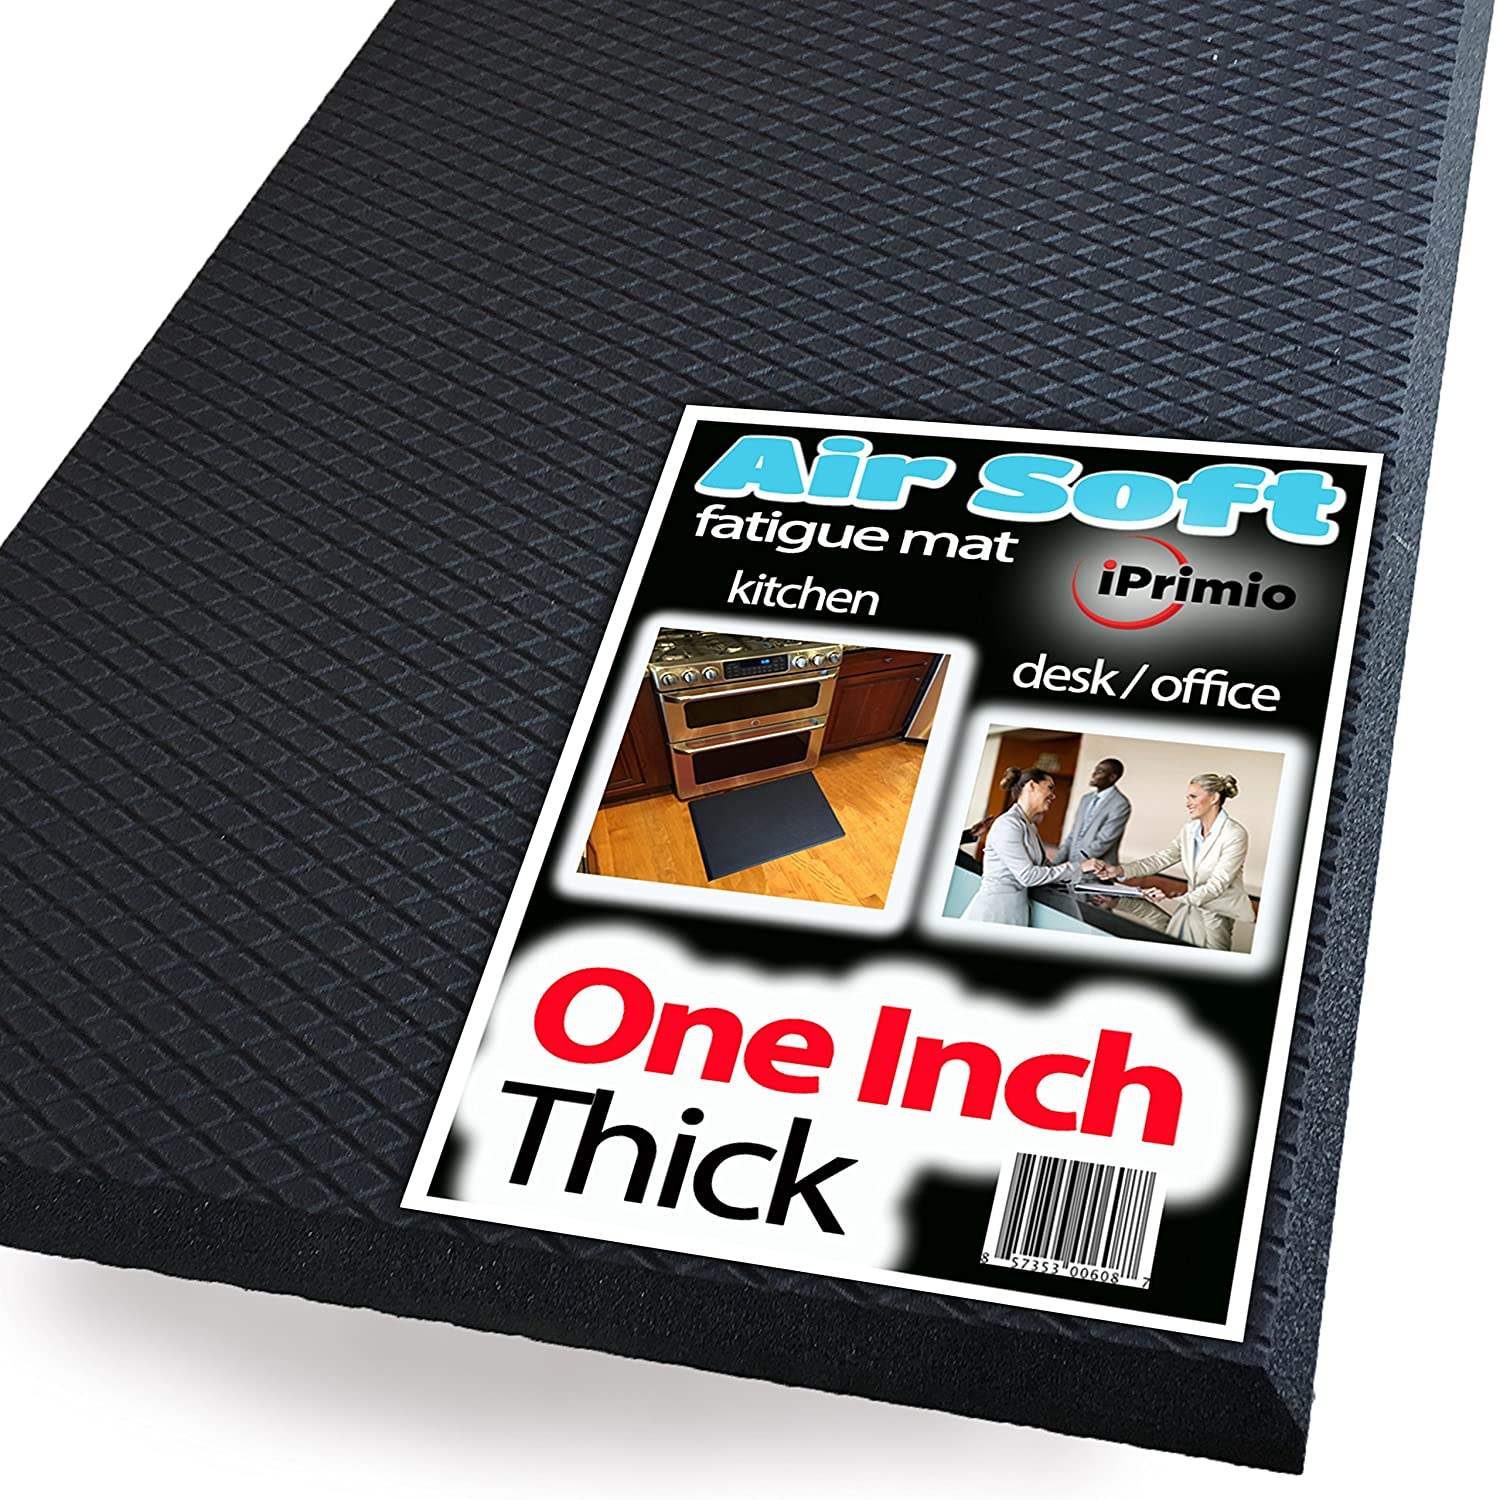 Extra Thick ONE INCH, Standing Anti Fatigue AIR SOFT Mat - LARGE Size 36x24 Soft Standing Mat for Office, Ergonomic, Counter, Standing Desk Floor Mat, Fatigue Kitchen Mat, Fatigue Floor Mat, iPrimio FATIGUEMATJASON